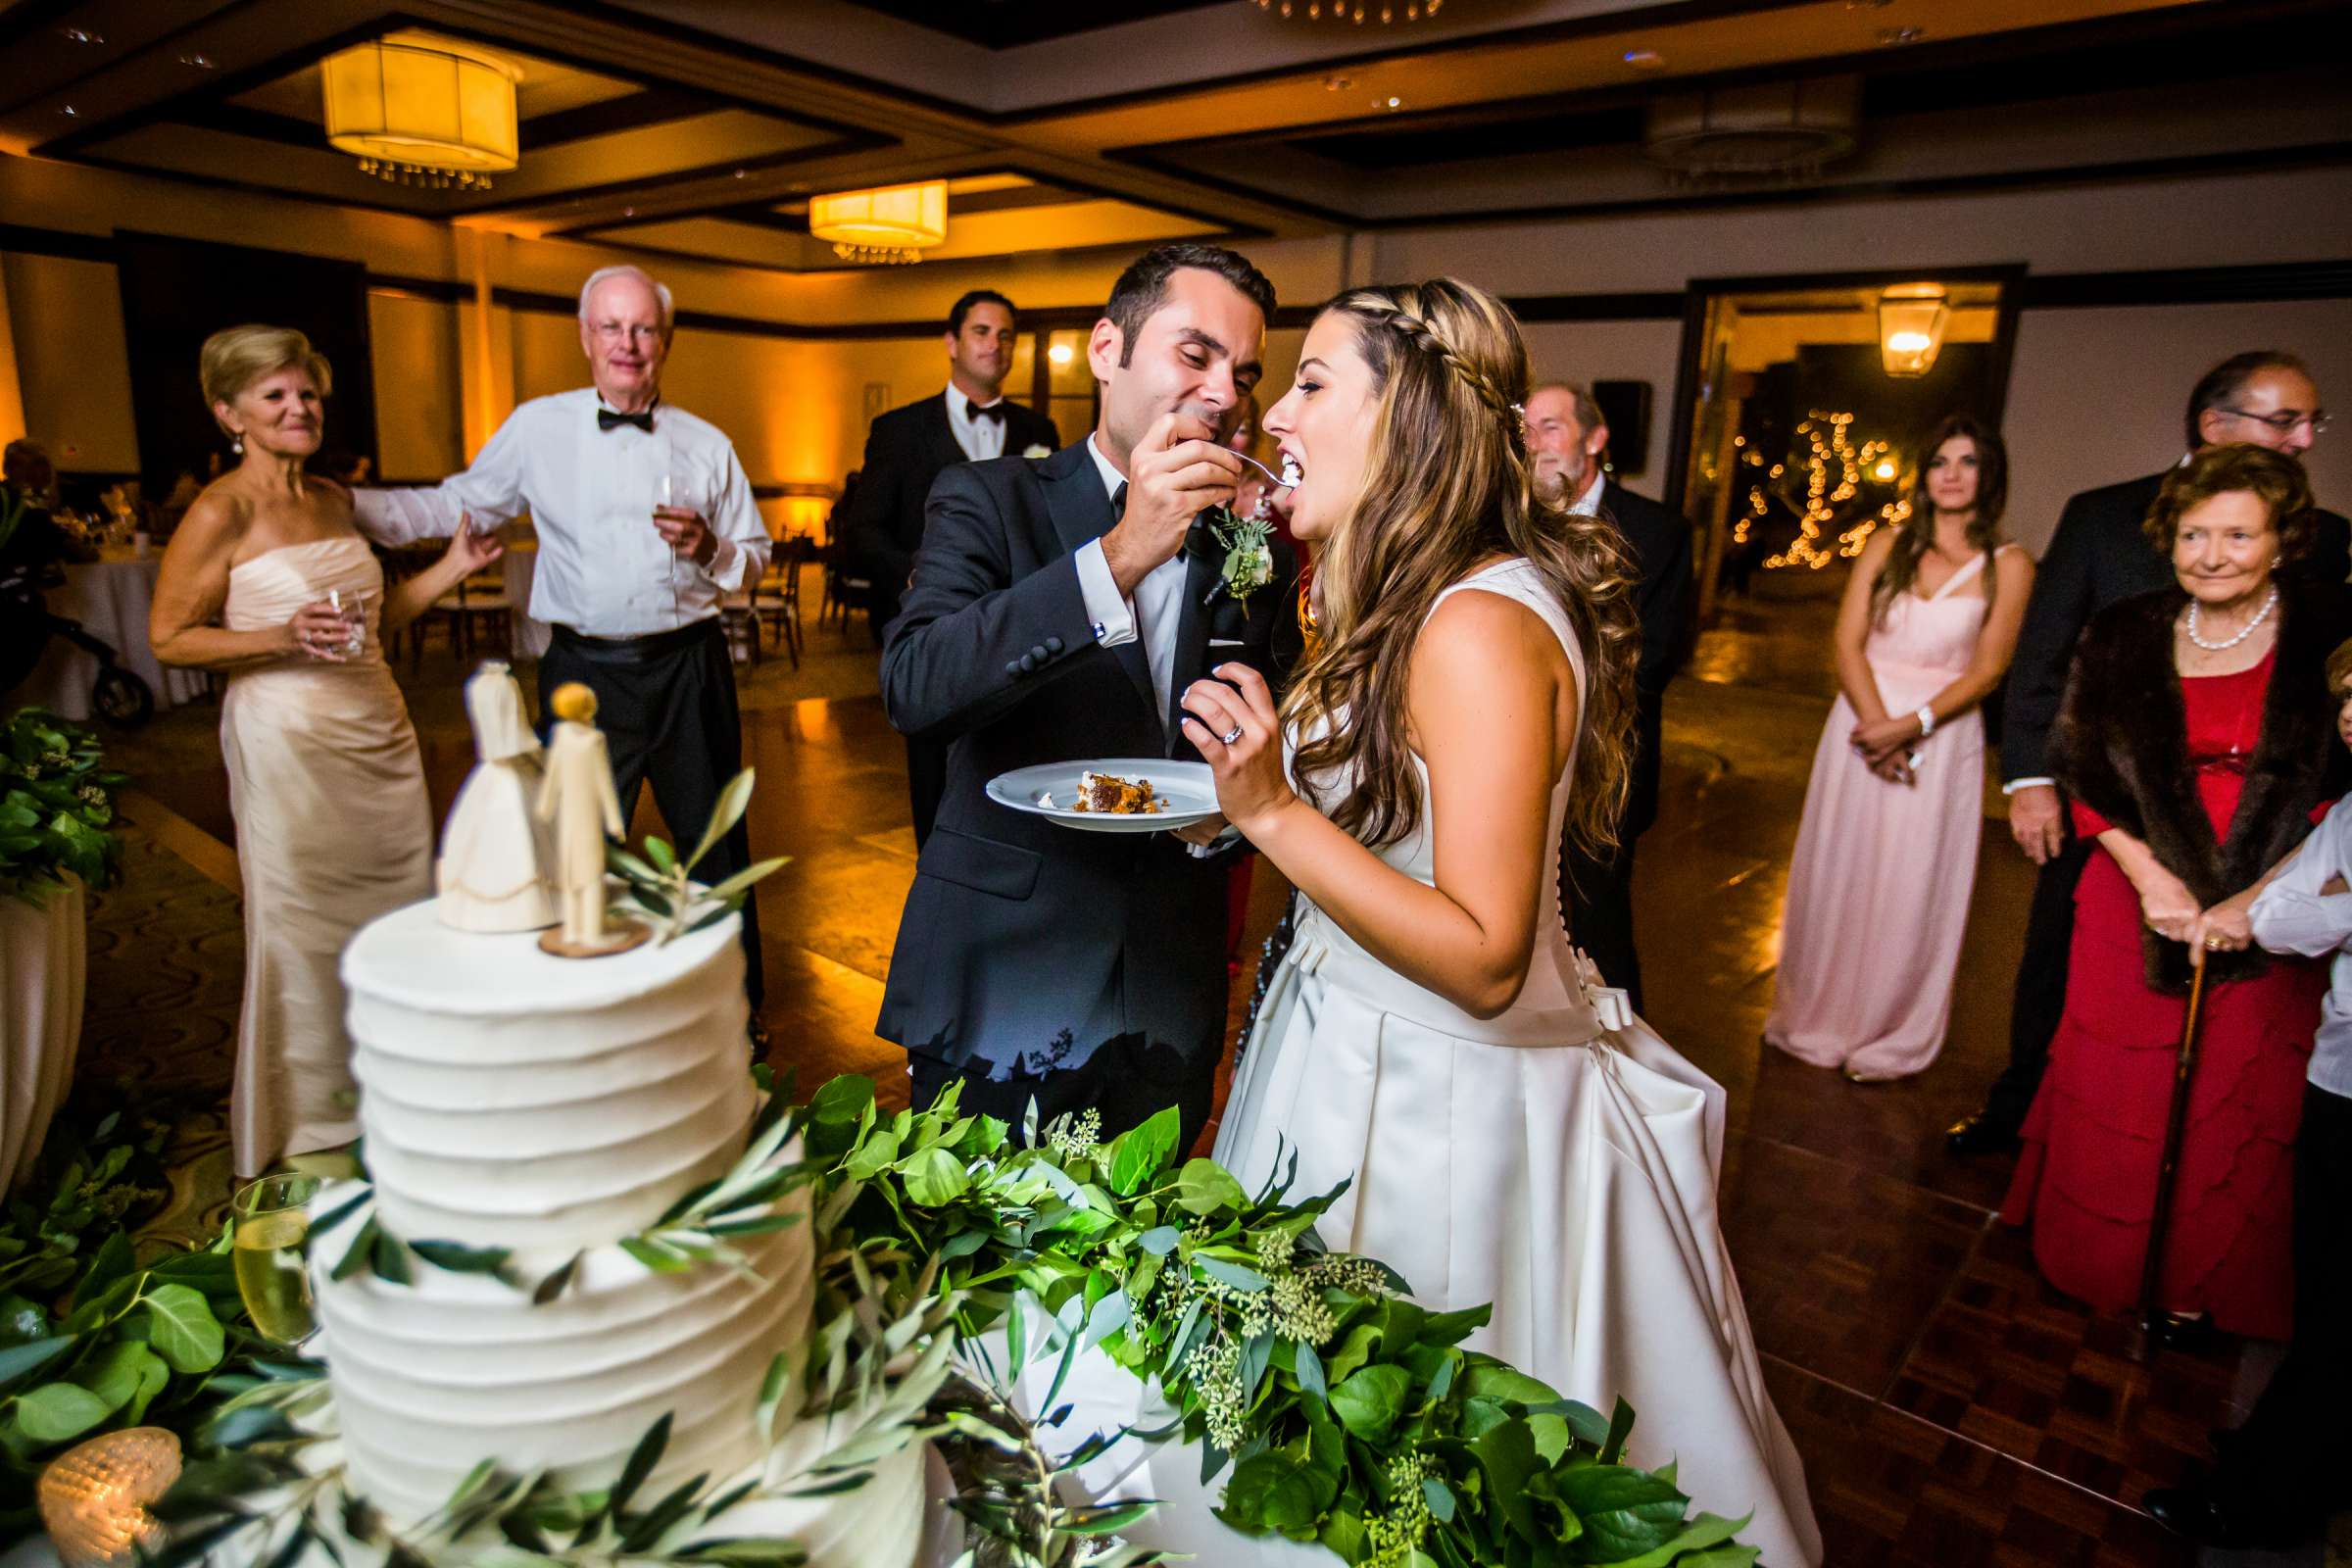 Rancho Bernardo Inn Wedding coordinated by Très Chic Events, Stefania and Nicholas Wedding Photo #85 by True Photography